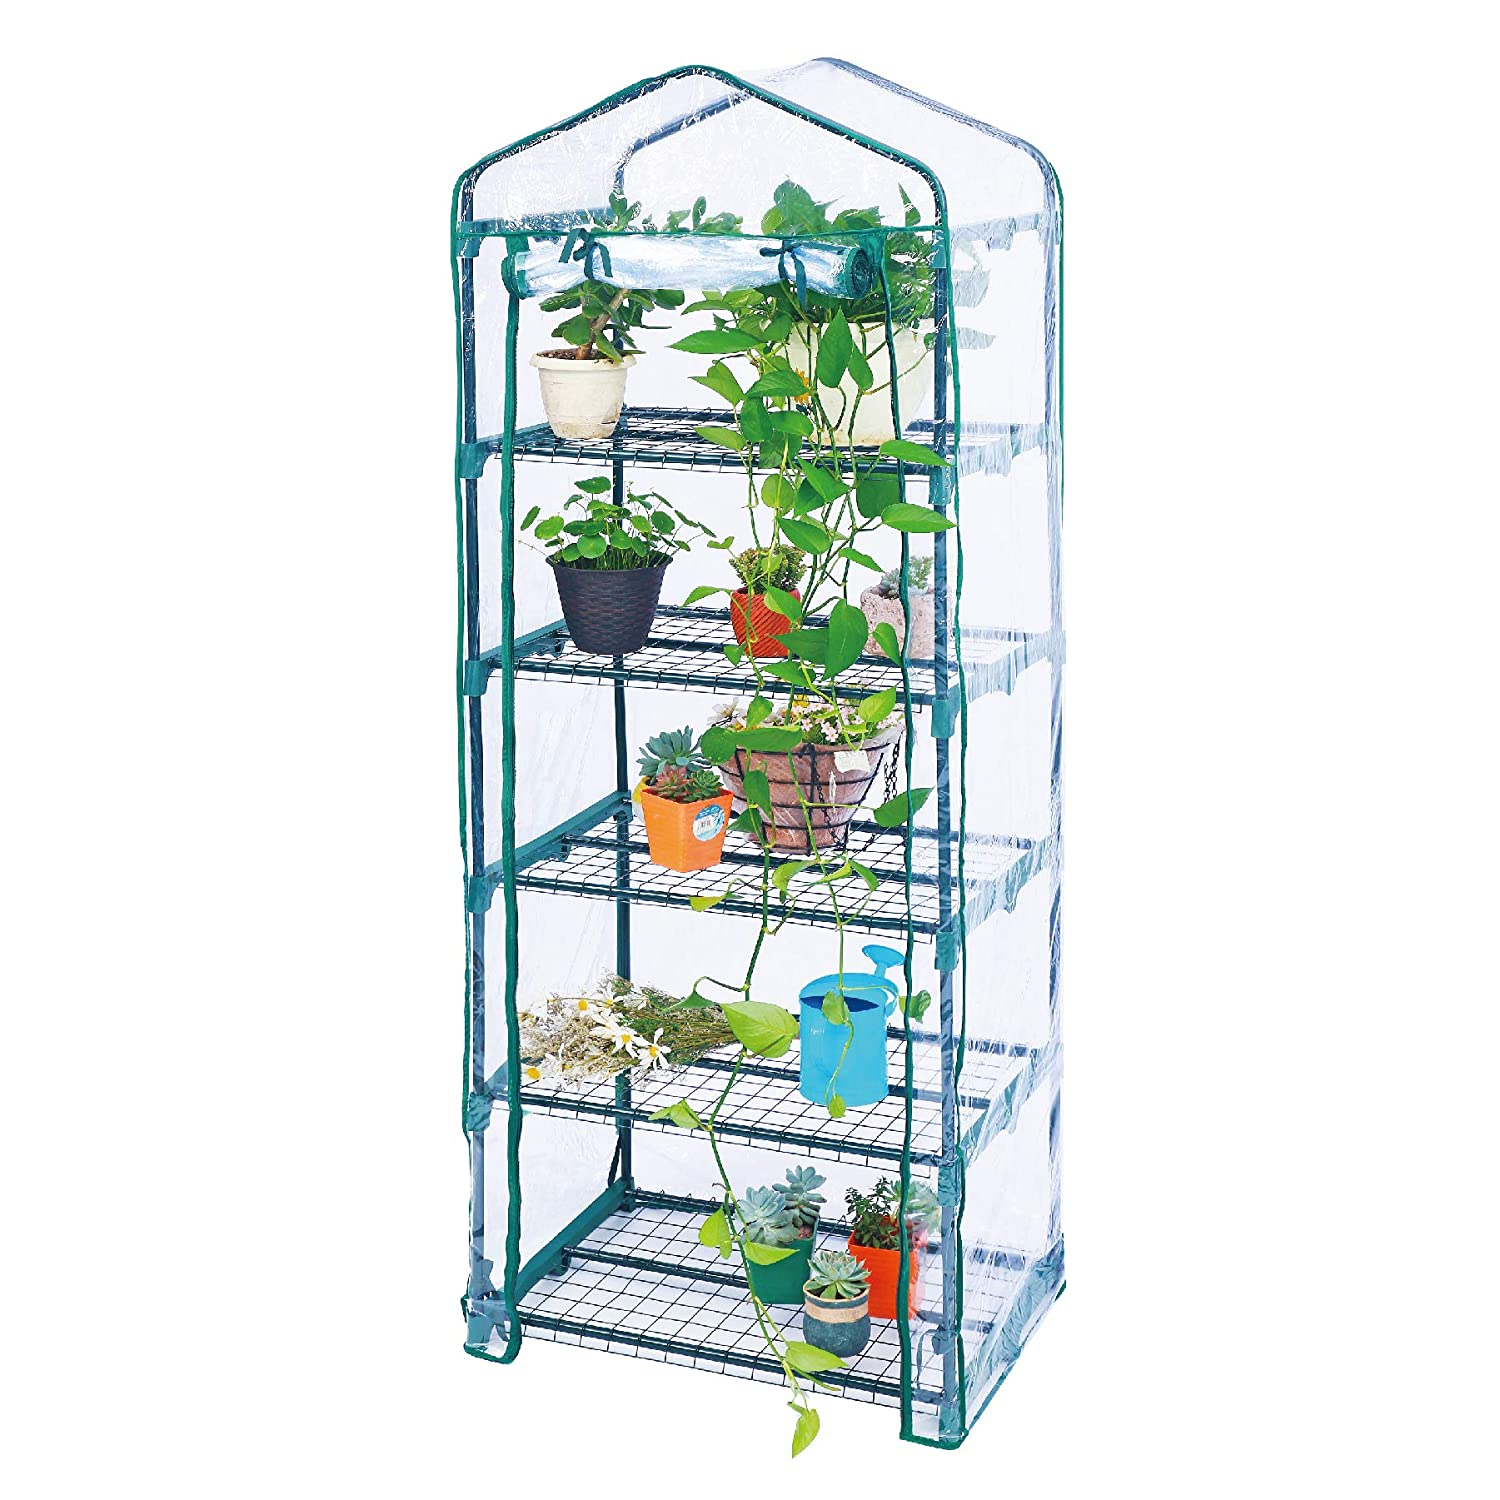 Worth 5 Tier Mini Greenhouse with Clear Polyethylene Cover, 27 Long x 19 Wide x 75 High Garden Green House